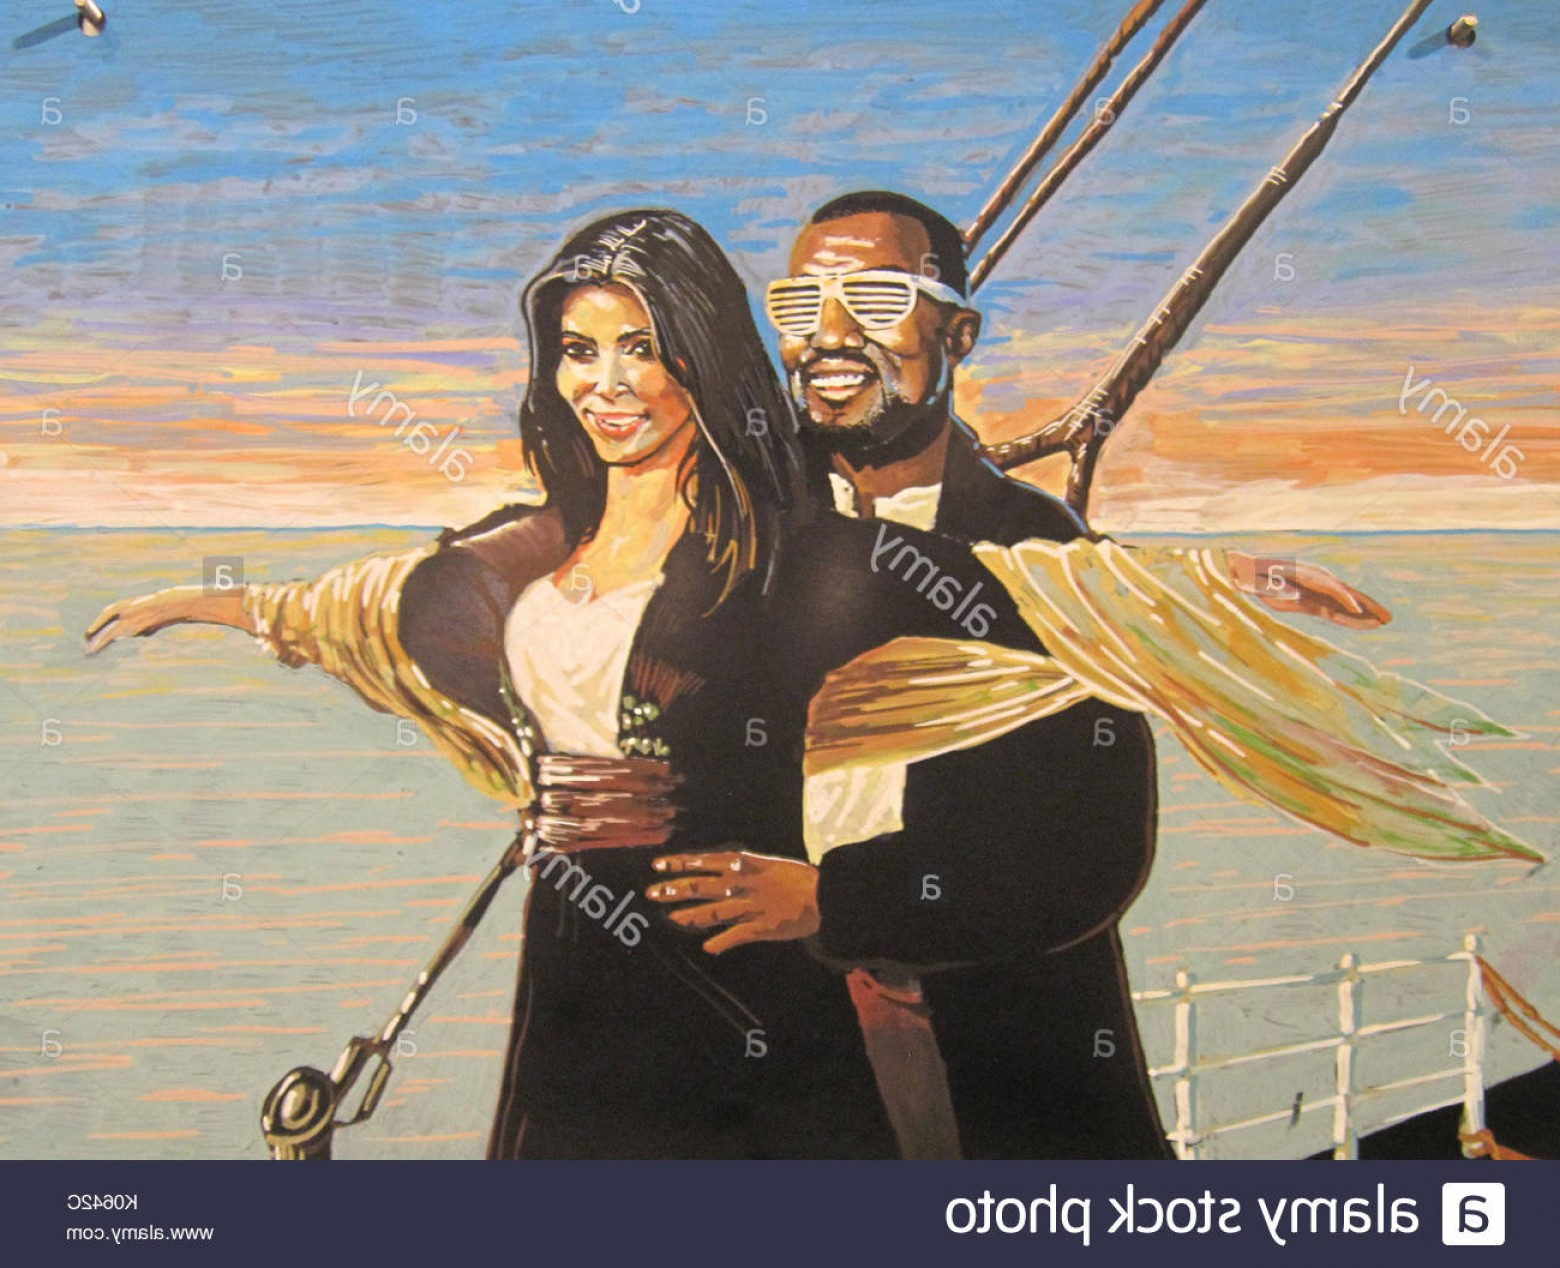 Kanye West Vector Paintig: Stock Photo Titanic Painting Hanging In Whole Foods But Will Their Hearts Go On